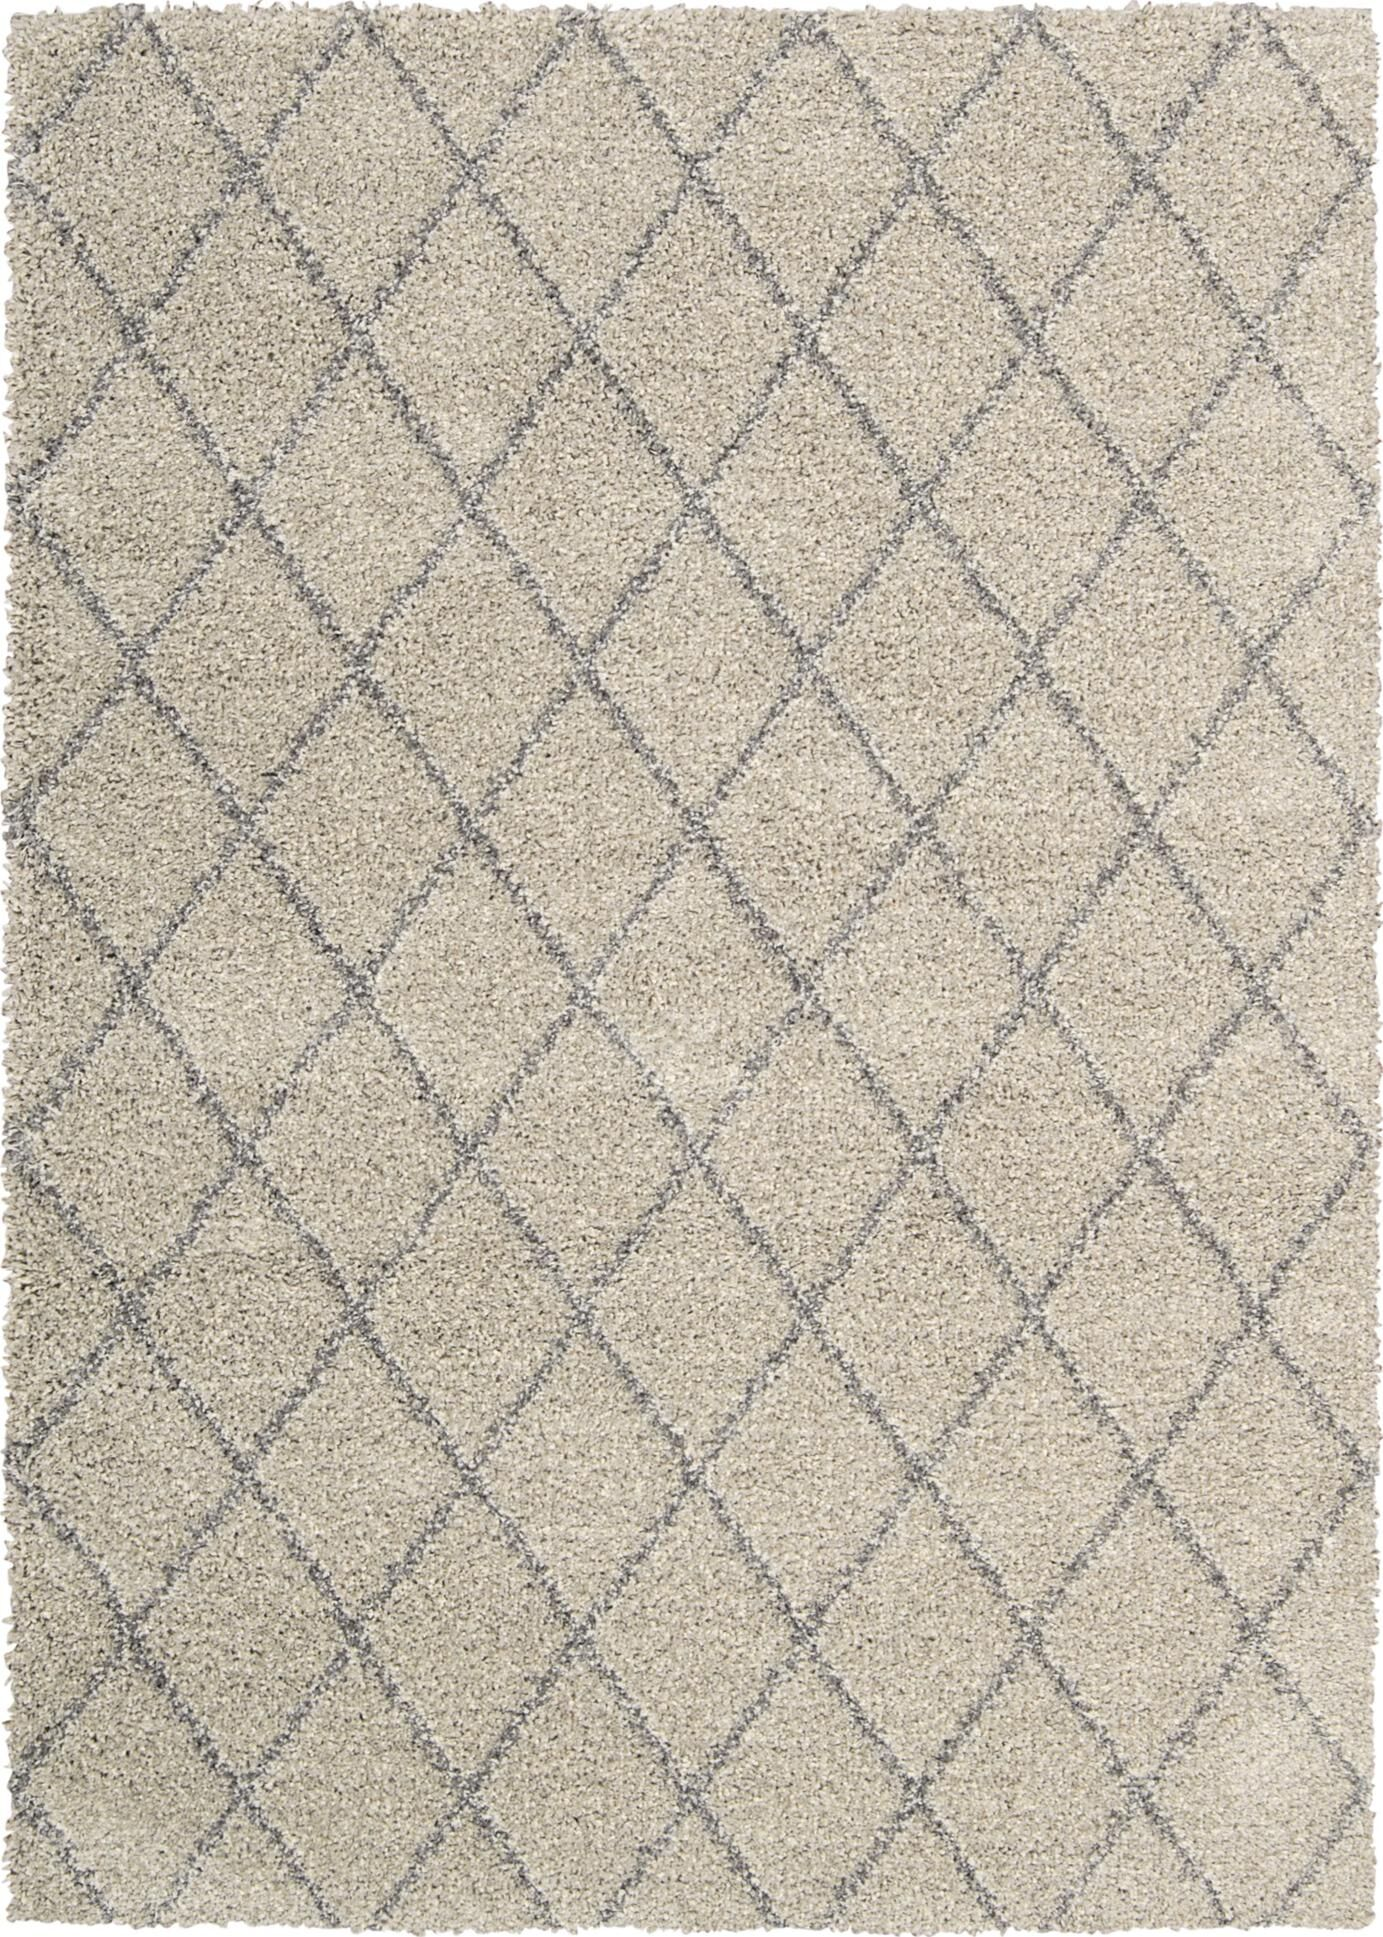 Neptune Ash Area Rug Rug Size: Rectangle 8'2